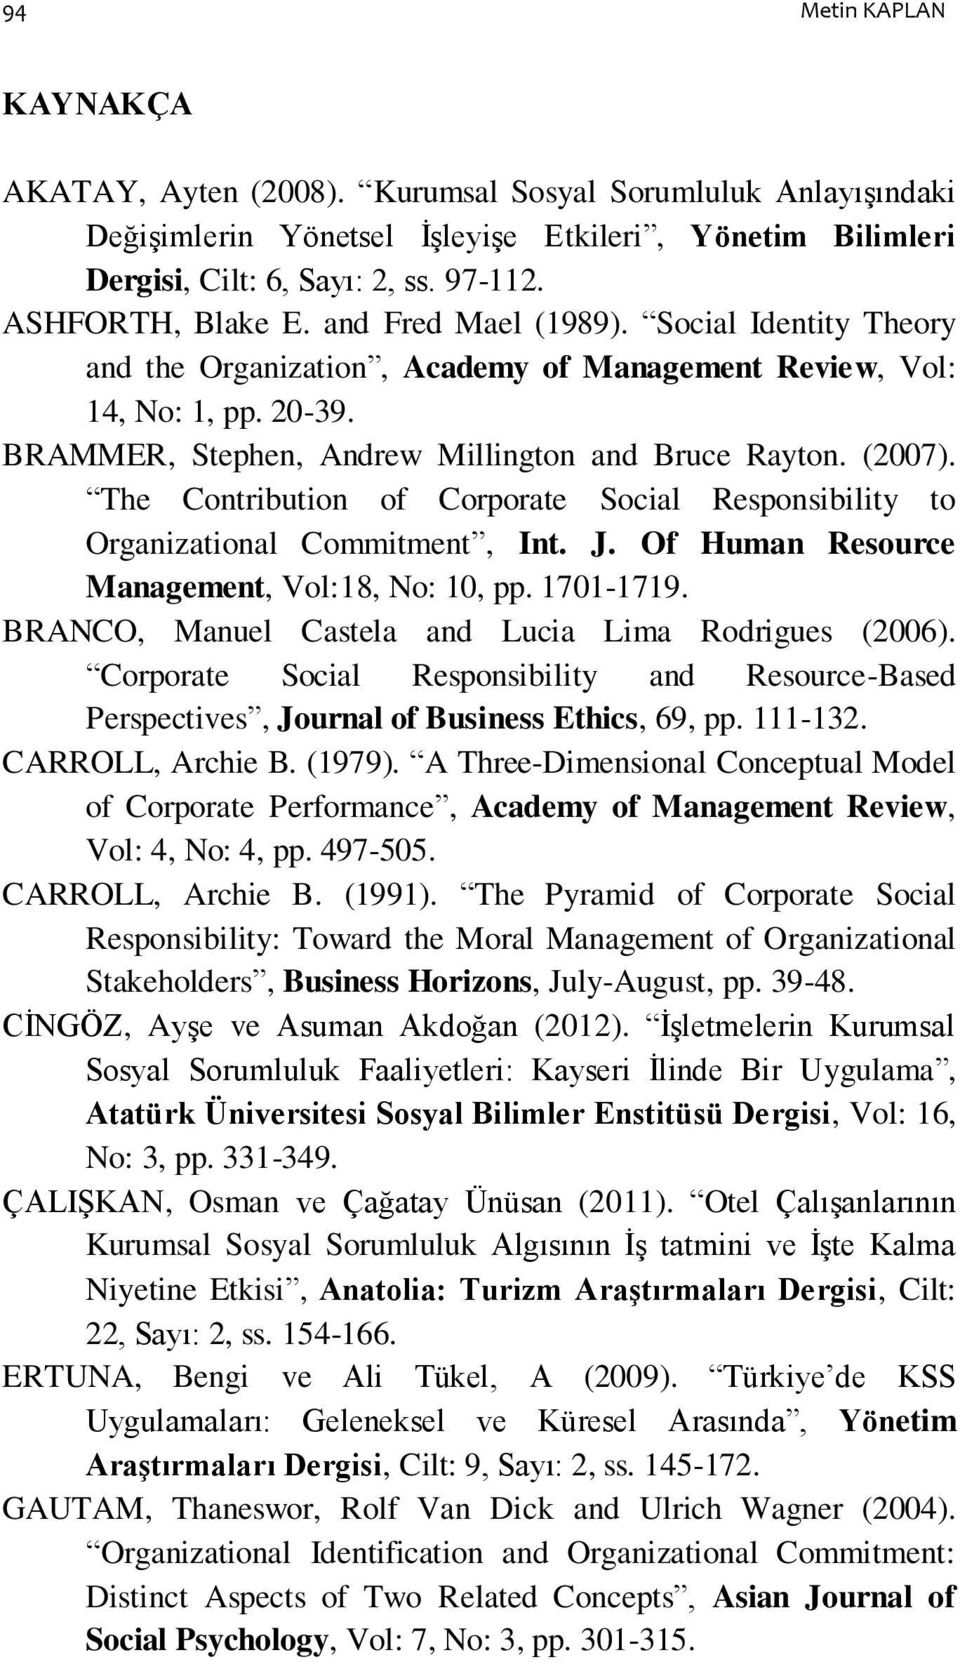 (2007). The Contribution of Corporate Social Responsibility to Organizational Commitment, Int. J. Of Human Resource Management, Vol:18, No: 10, pp. 1701-1719.